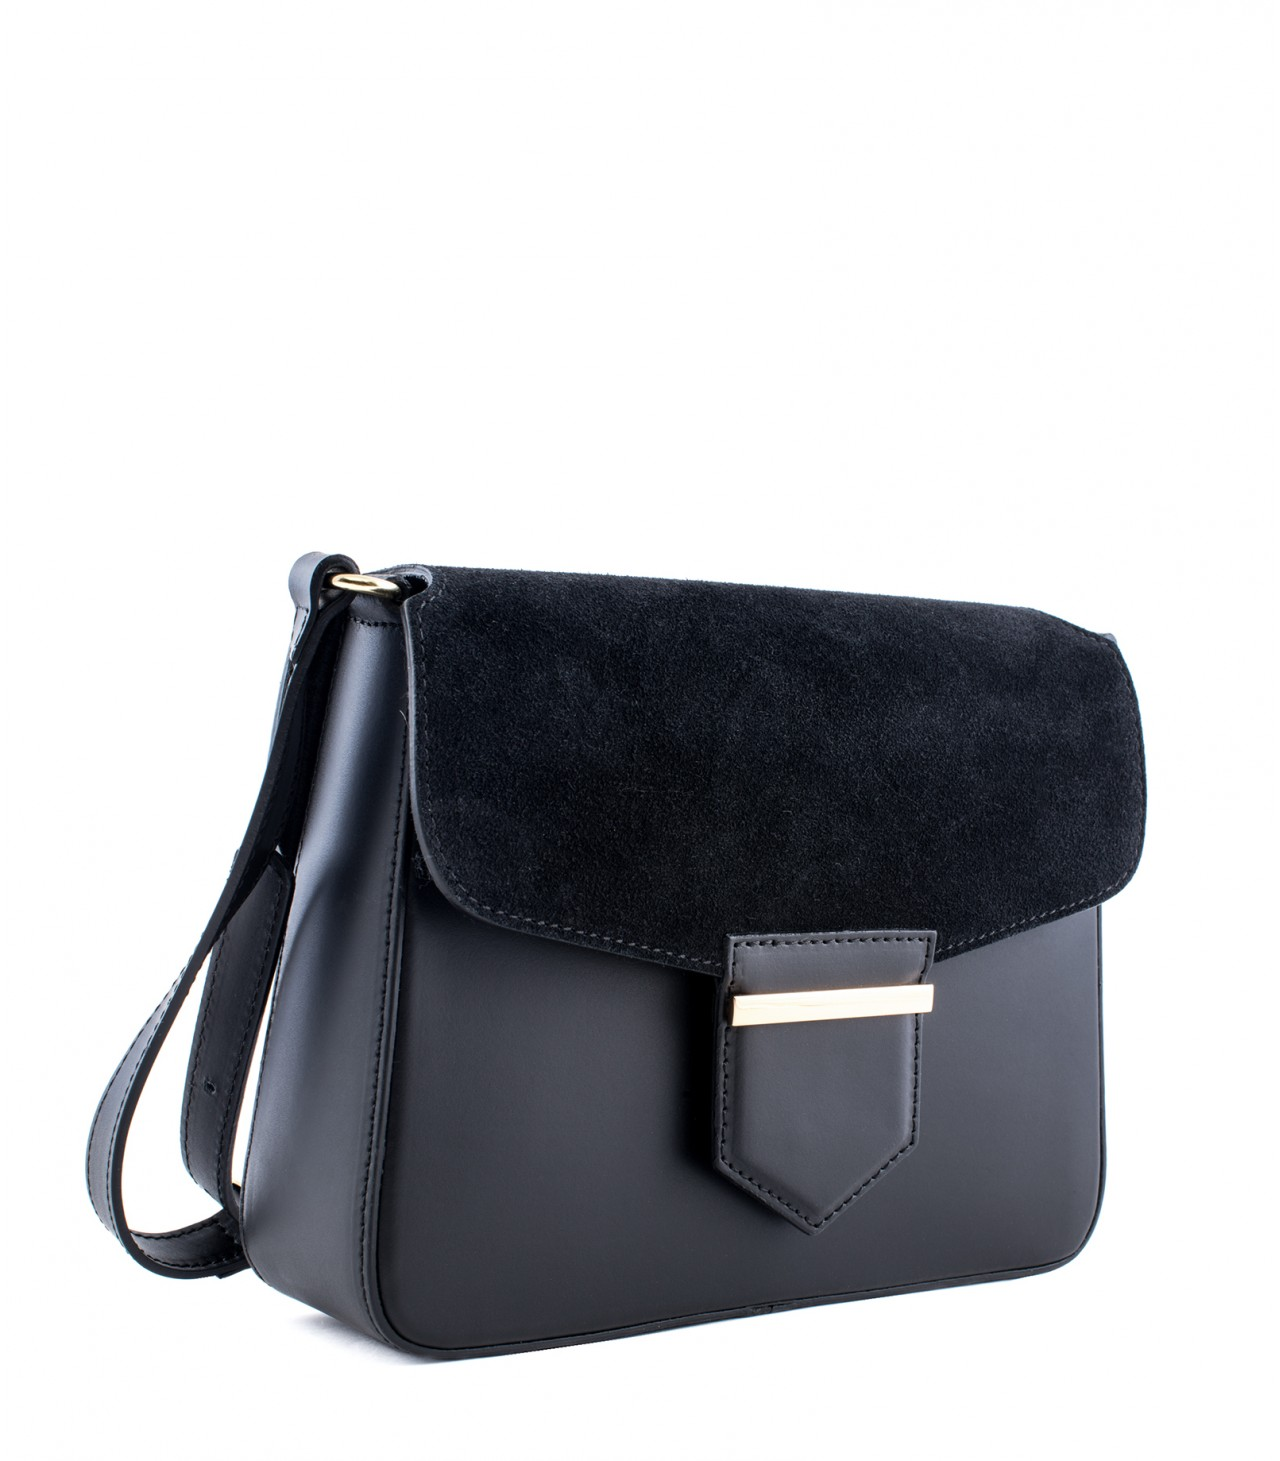 LEATHER AND SUEDE CROSSBODY BAG TRACOLLA_0033_NE COLOR: BLACK